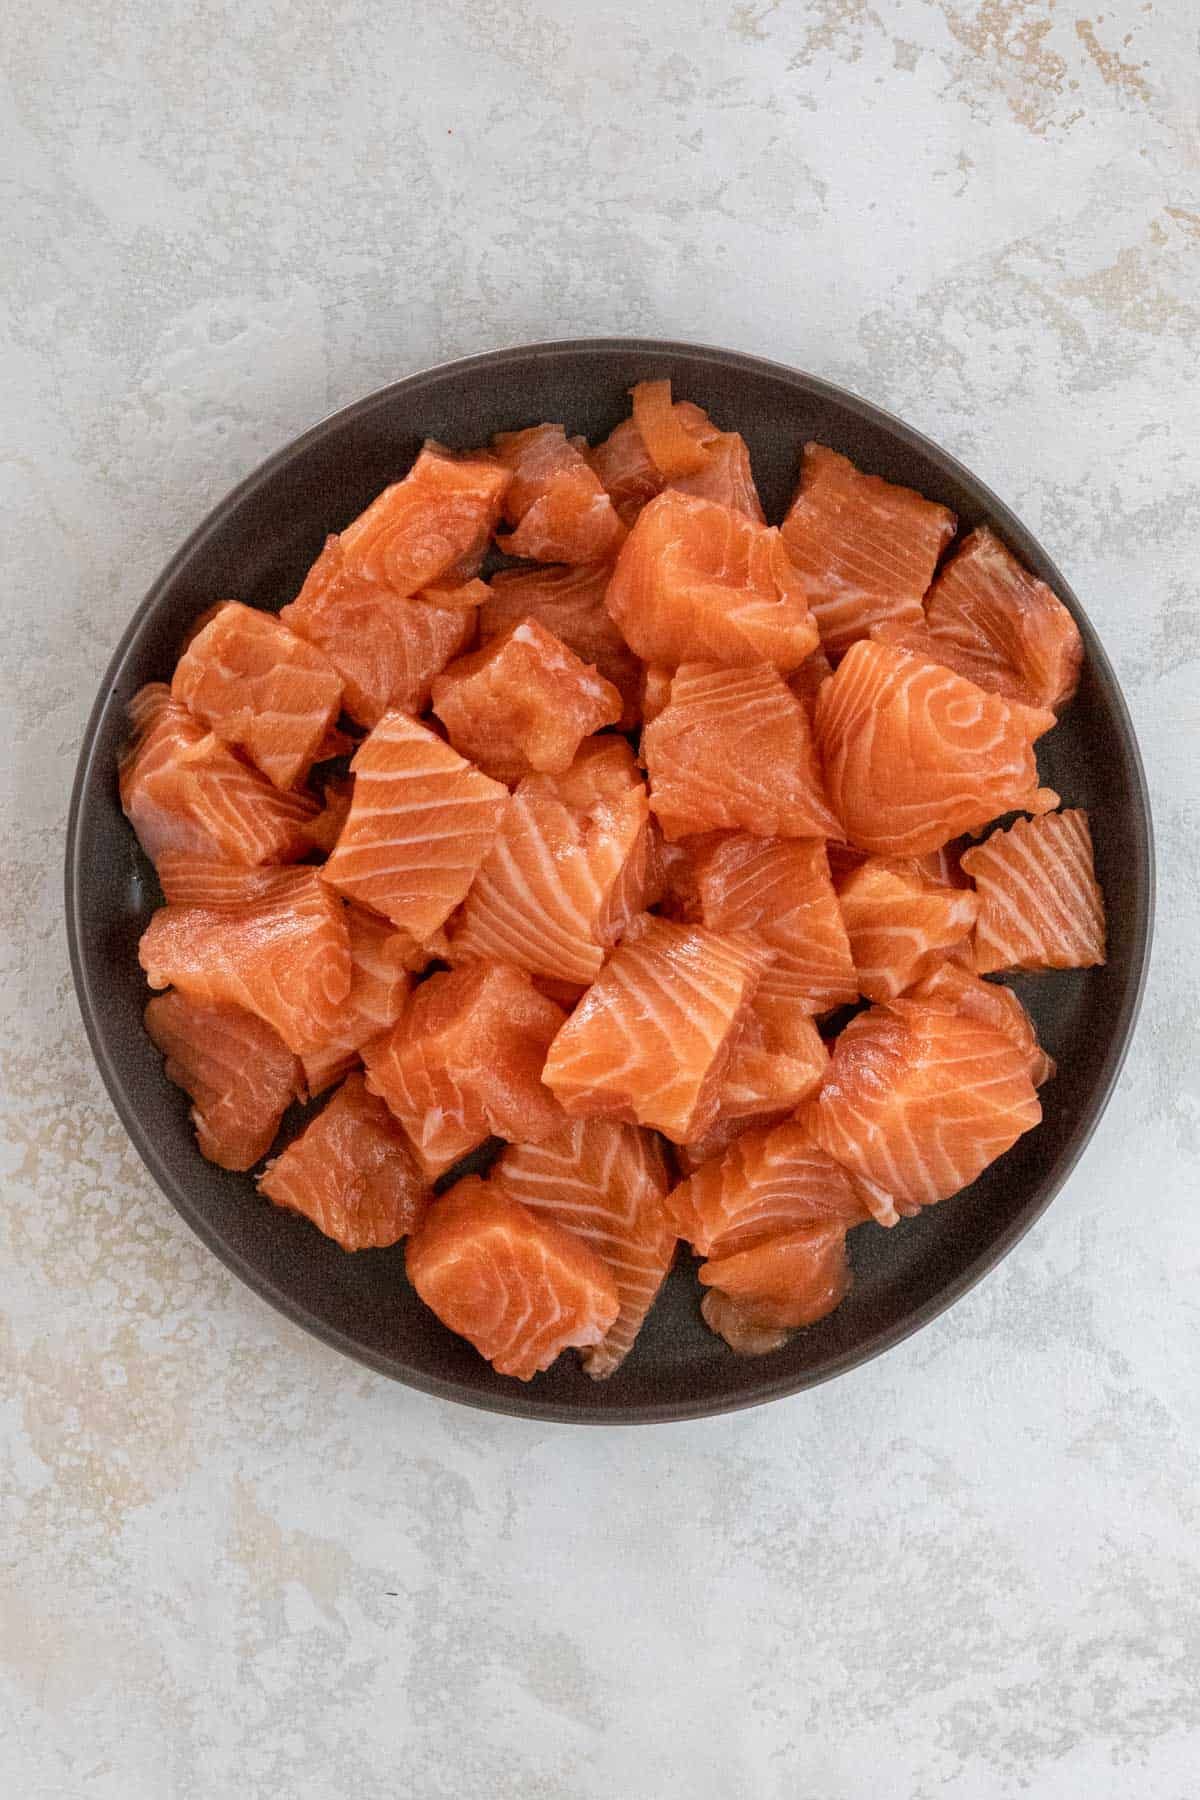 Cubed salmon in a black bowl.